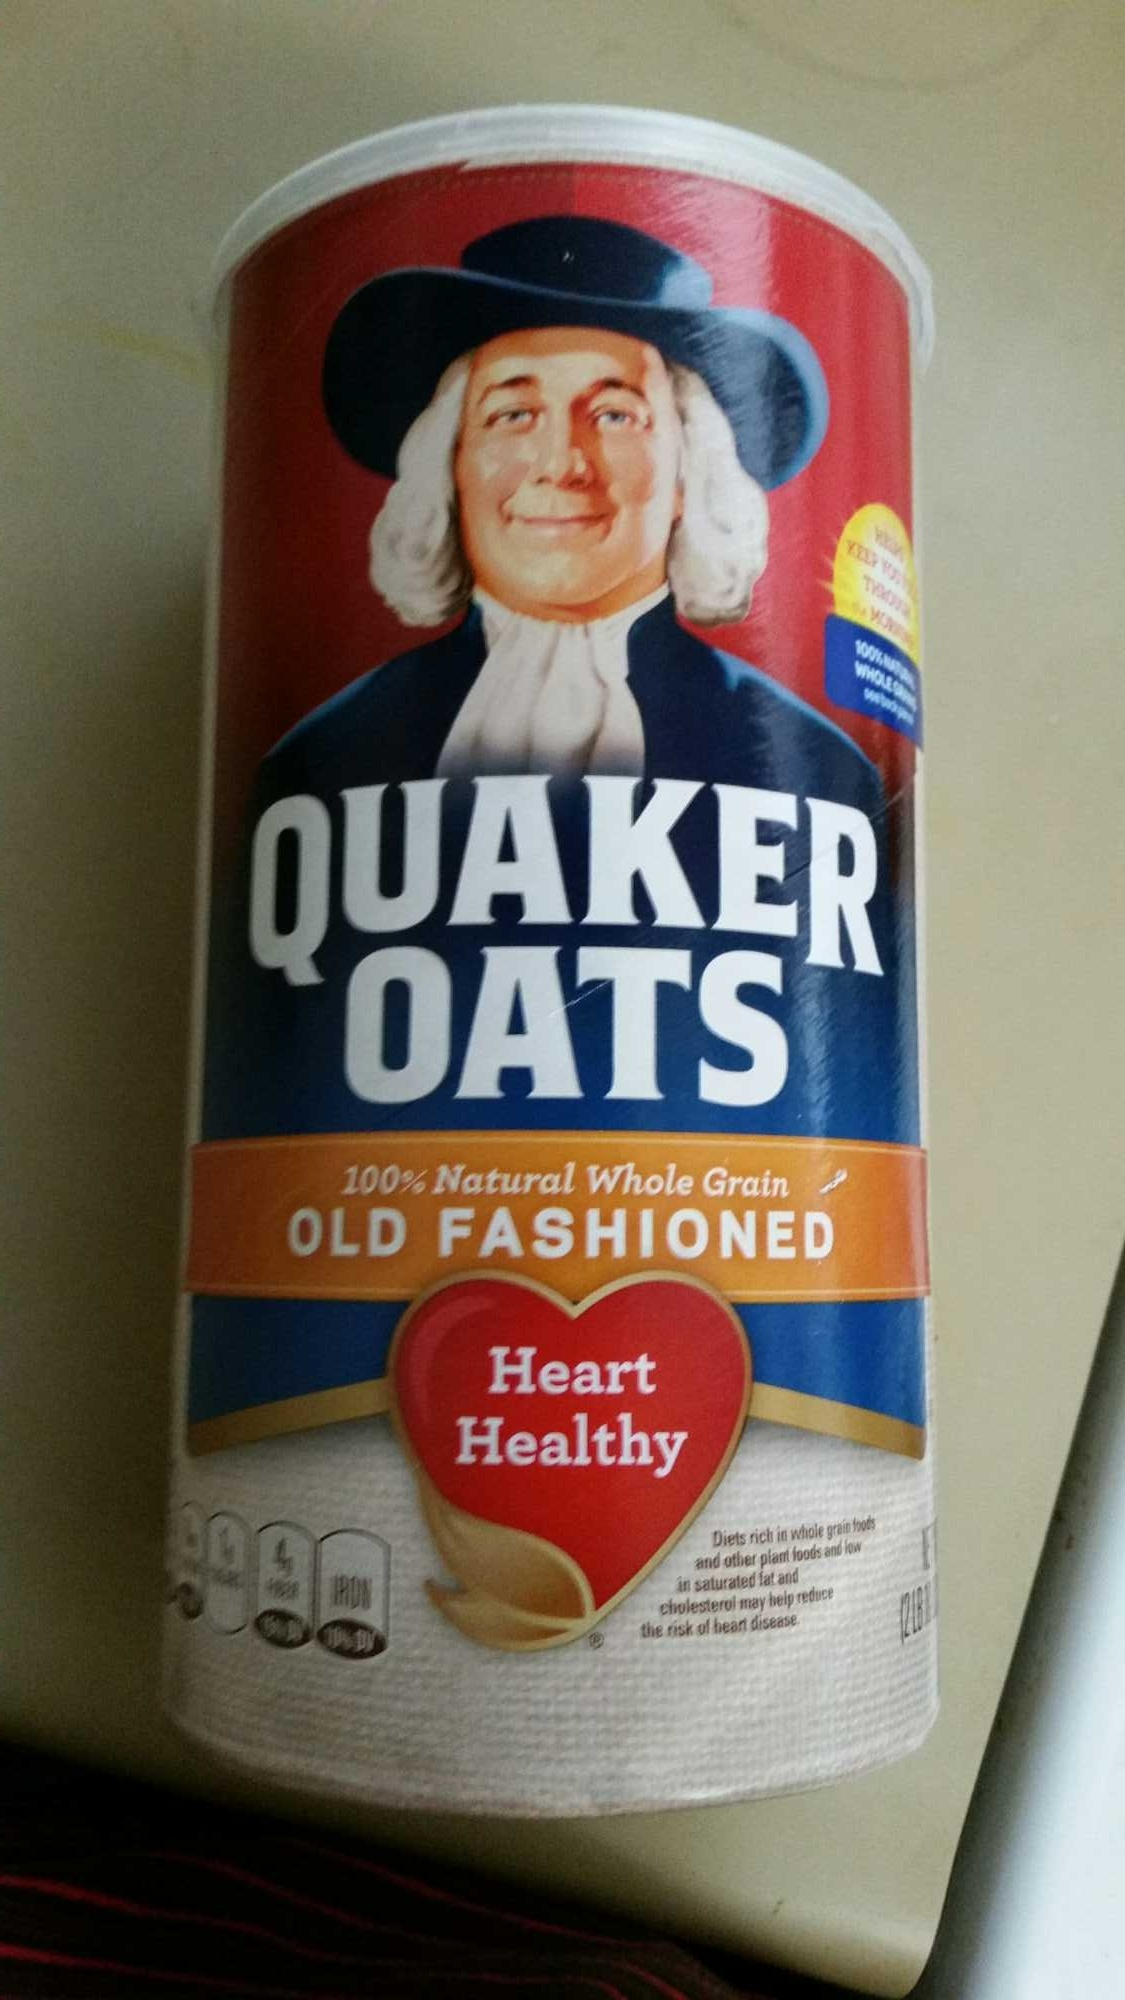 Old fashioned 100% whole grain oats, old fashioned - Product - en